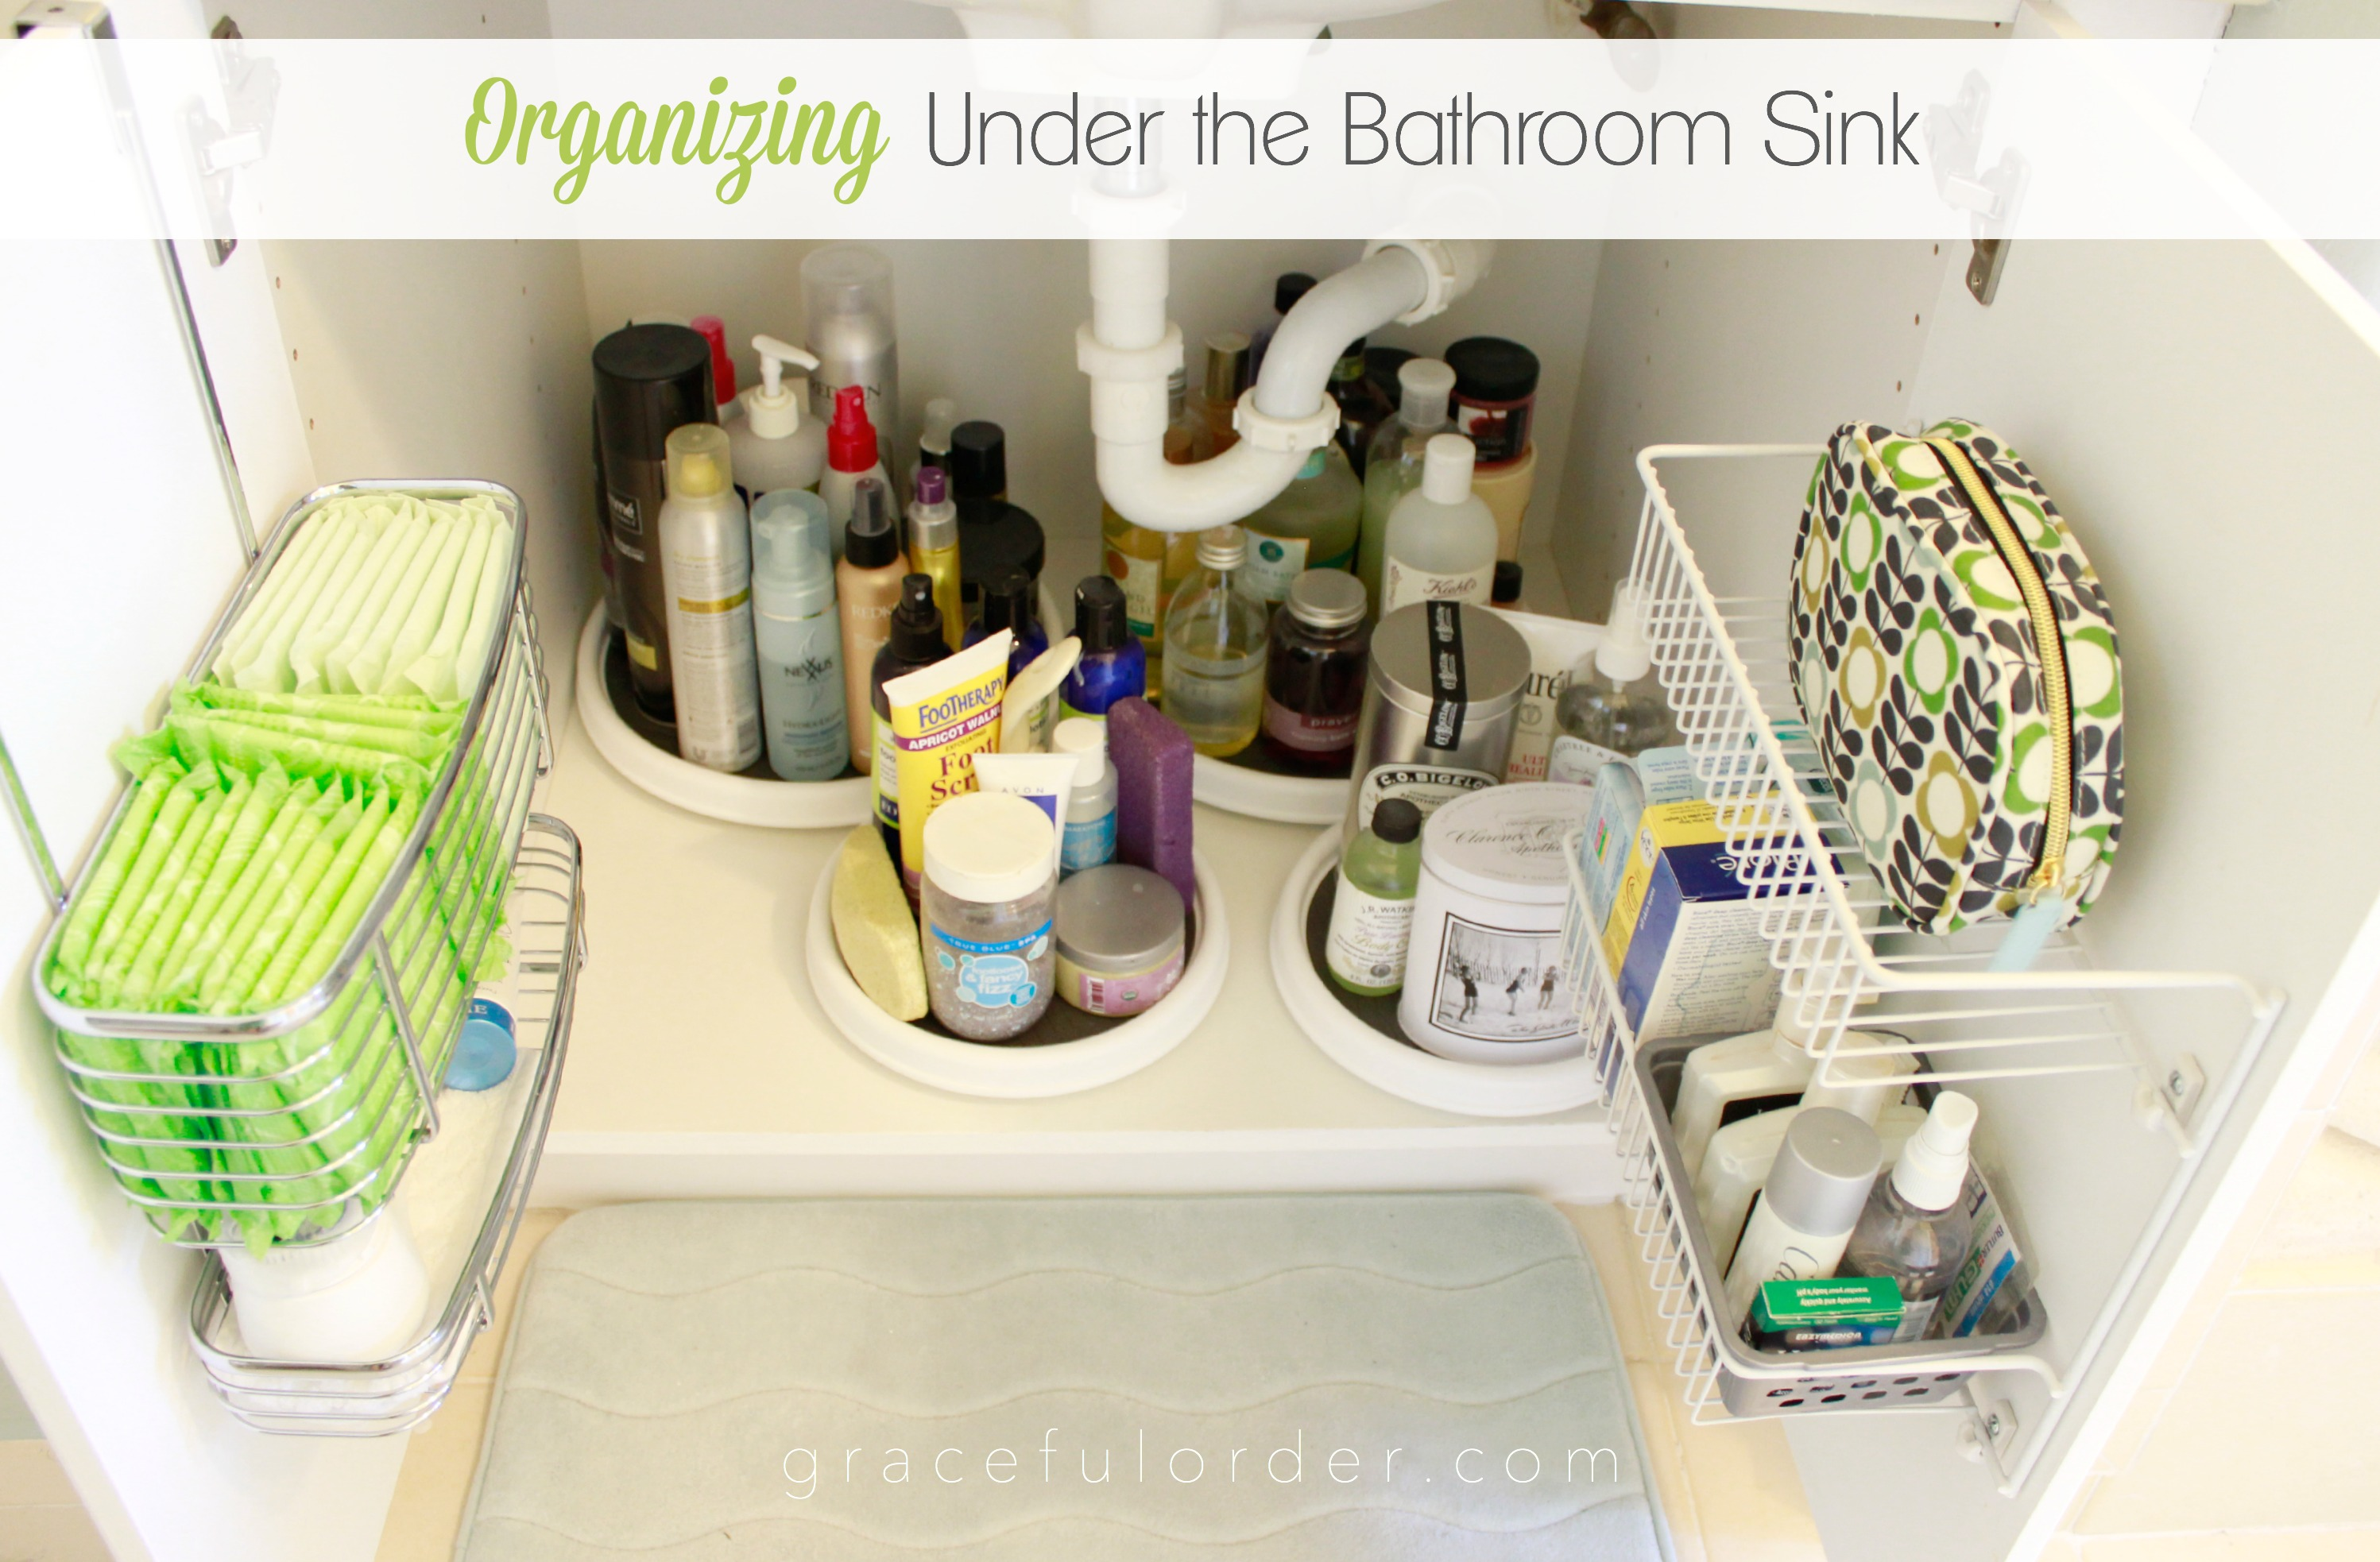 Under Kitchen Sink Organizing Organizing Under The Bathroom Sink Graceful Order